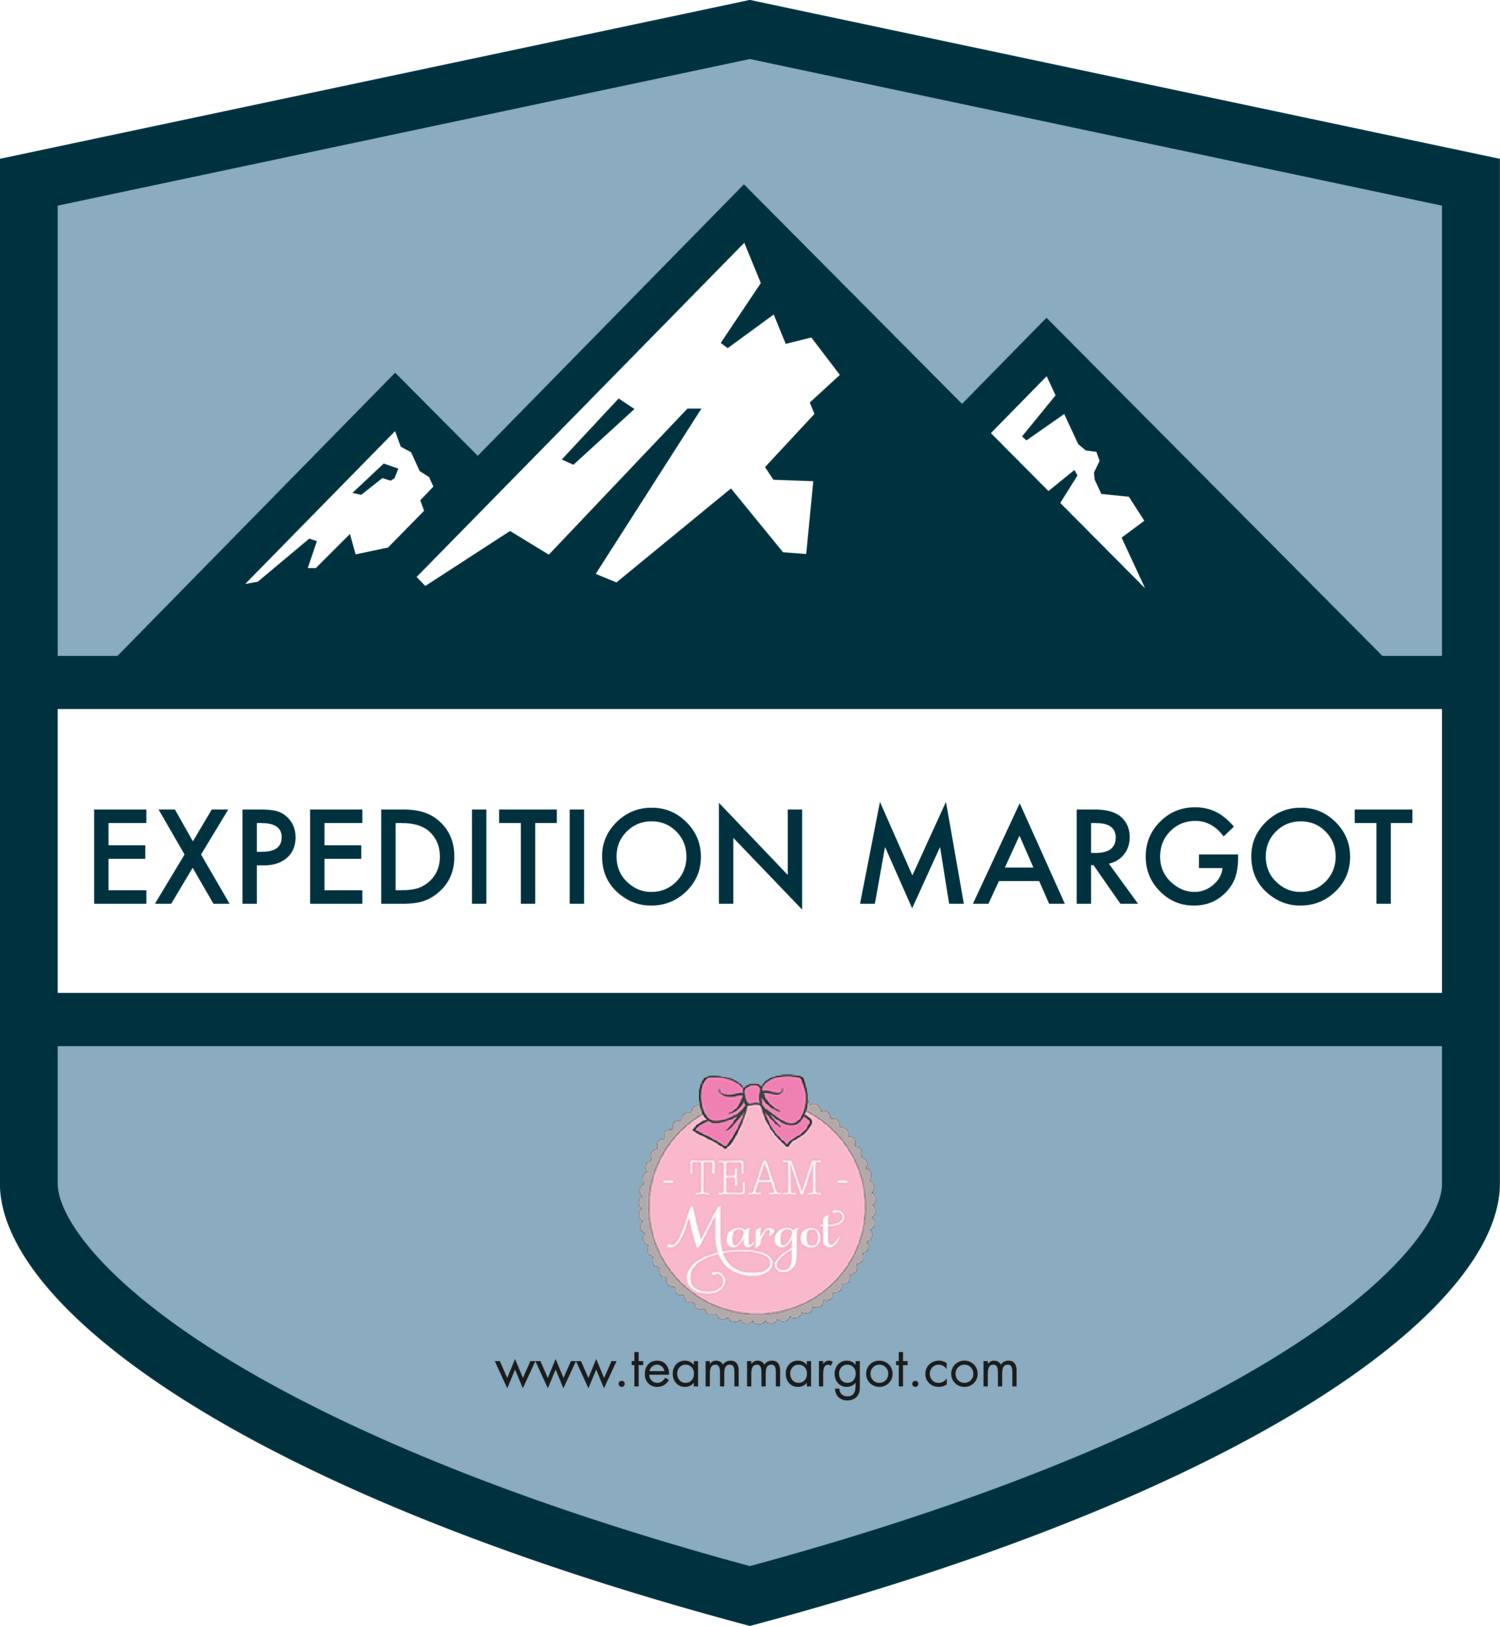 Expedition Margot